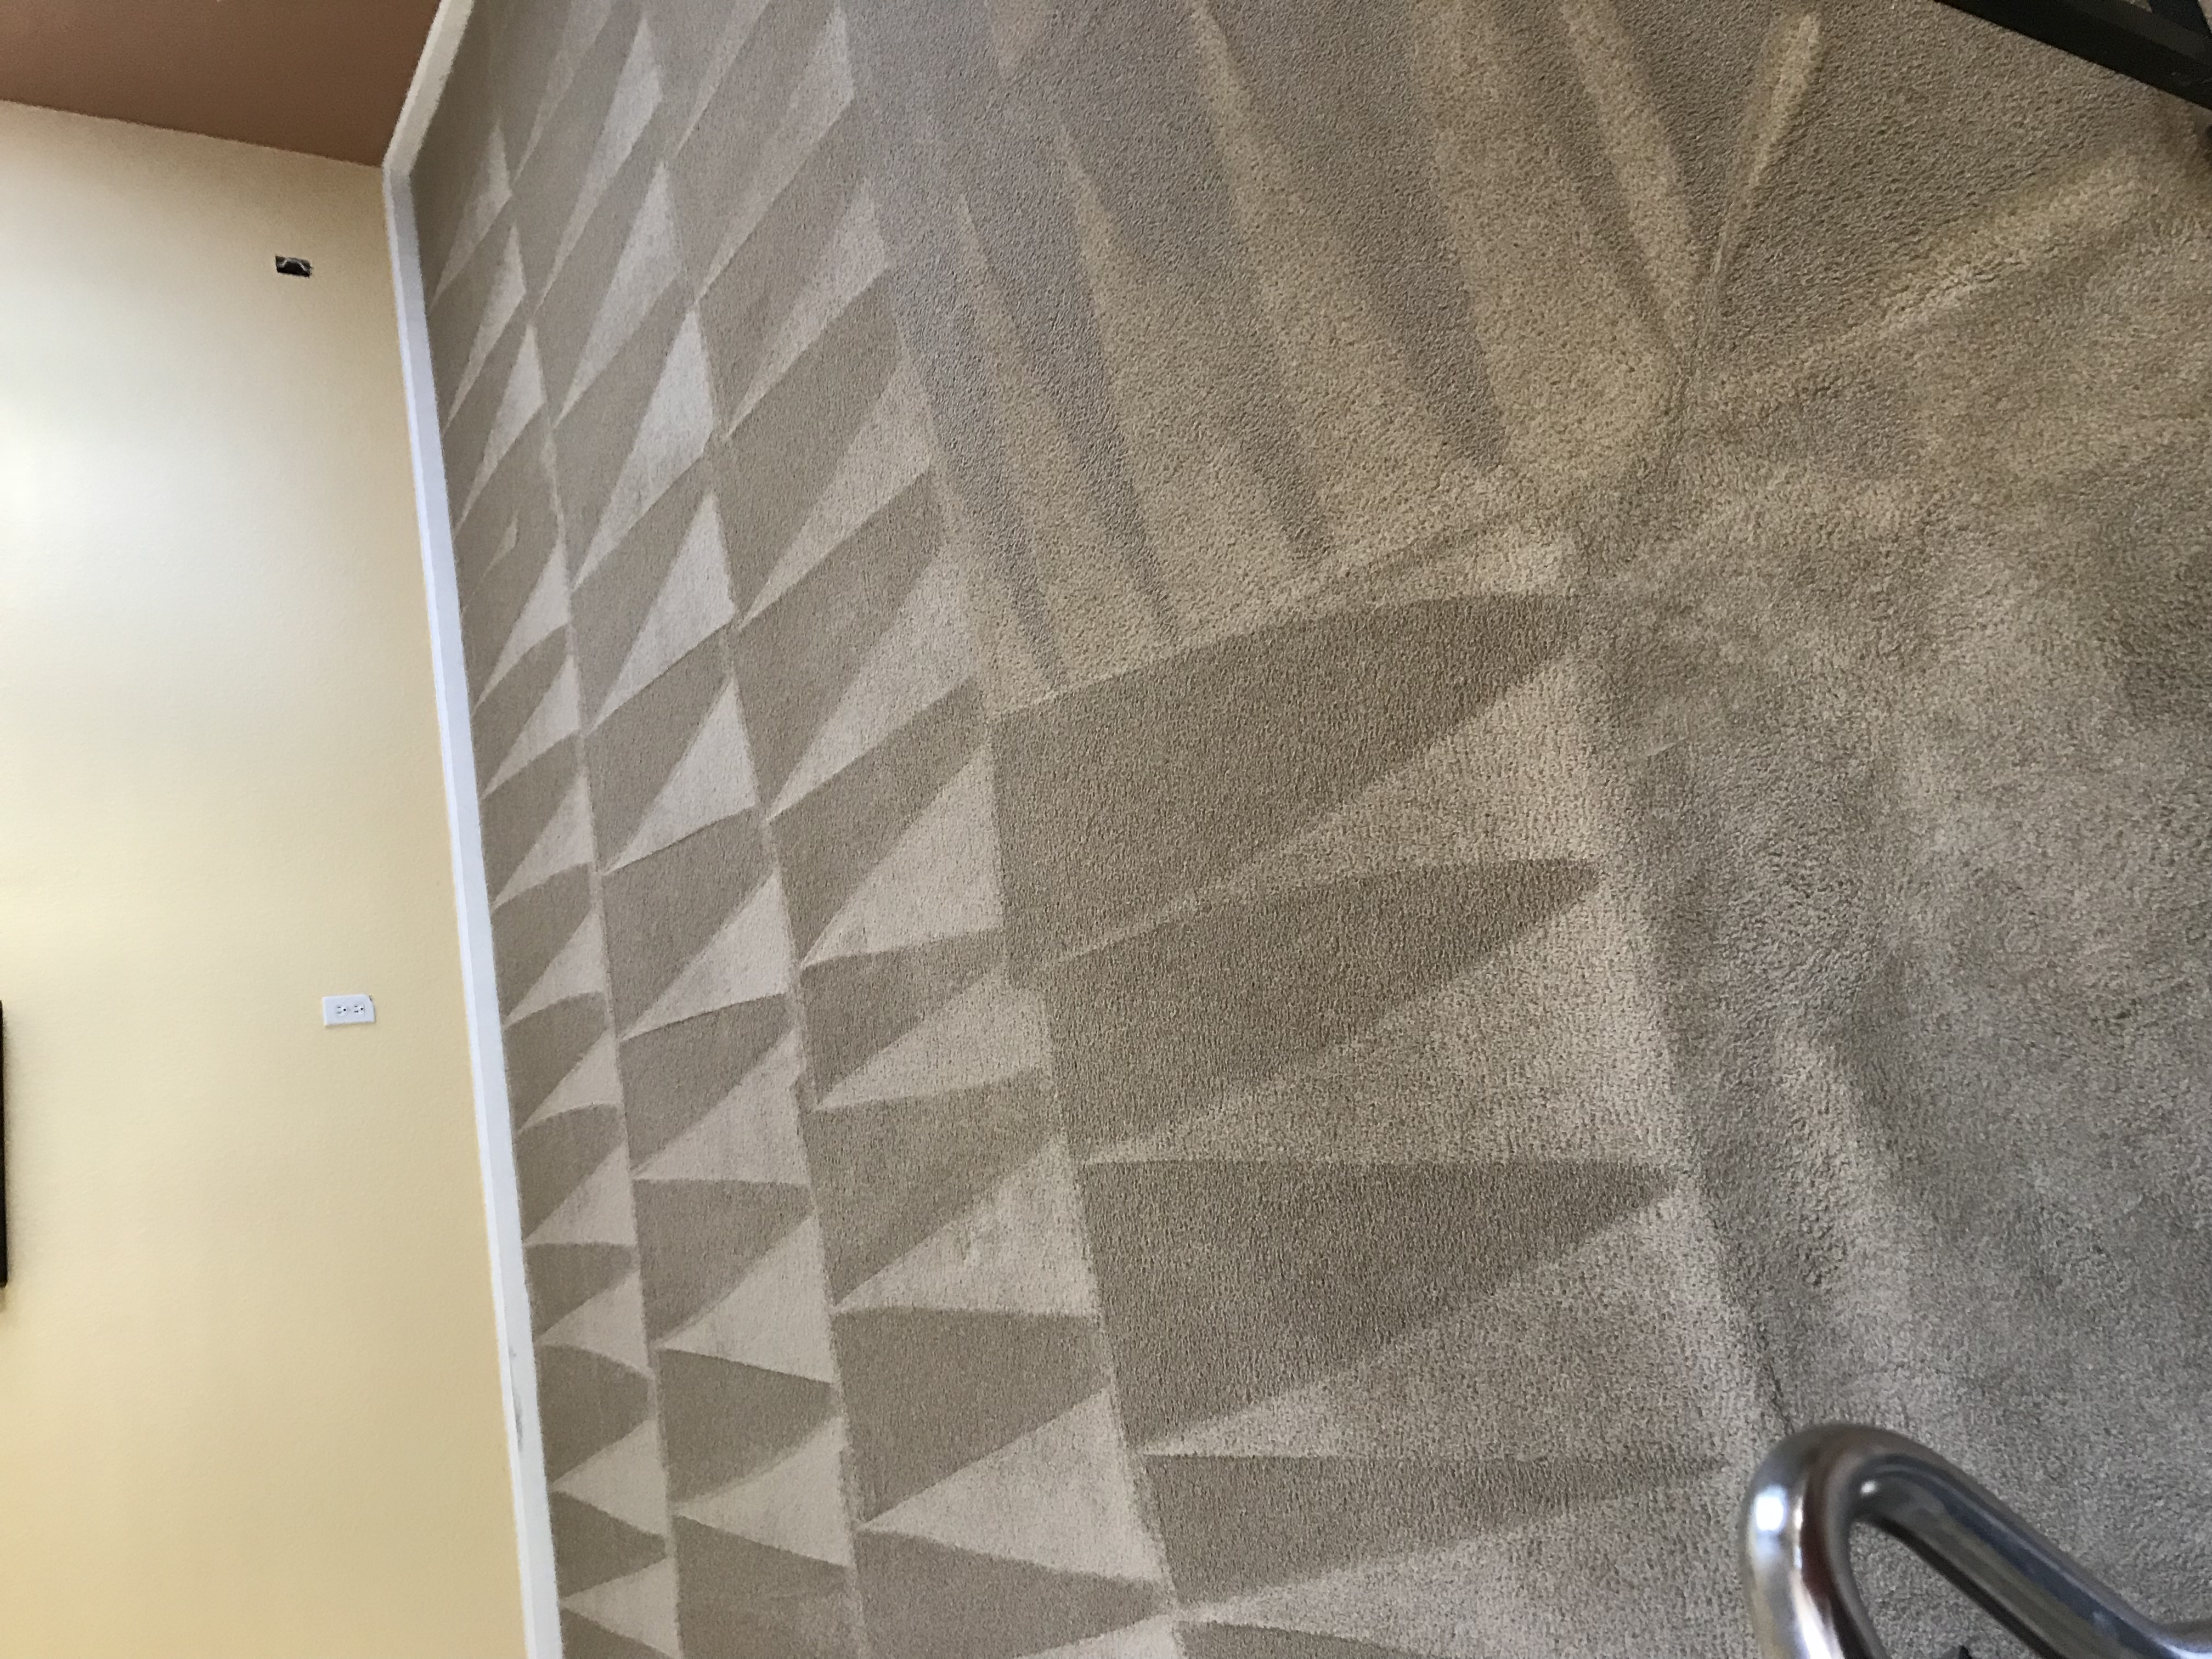 TNT Carpet Cleaning $45 special